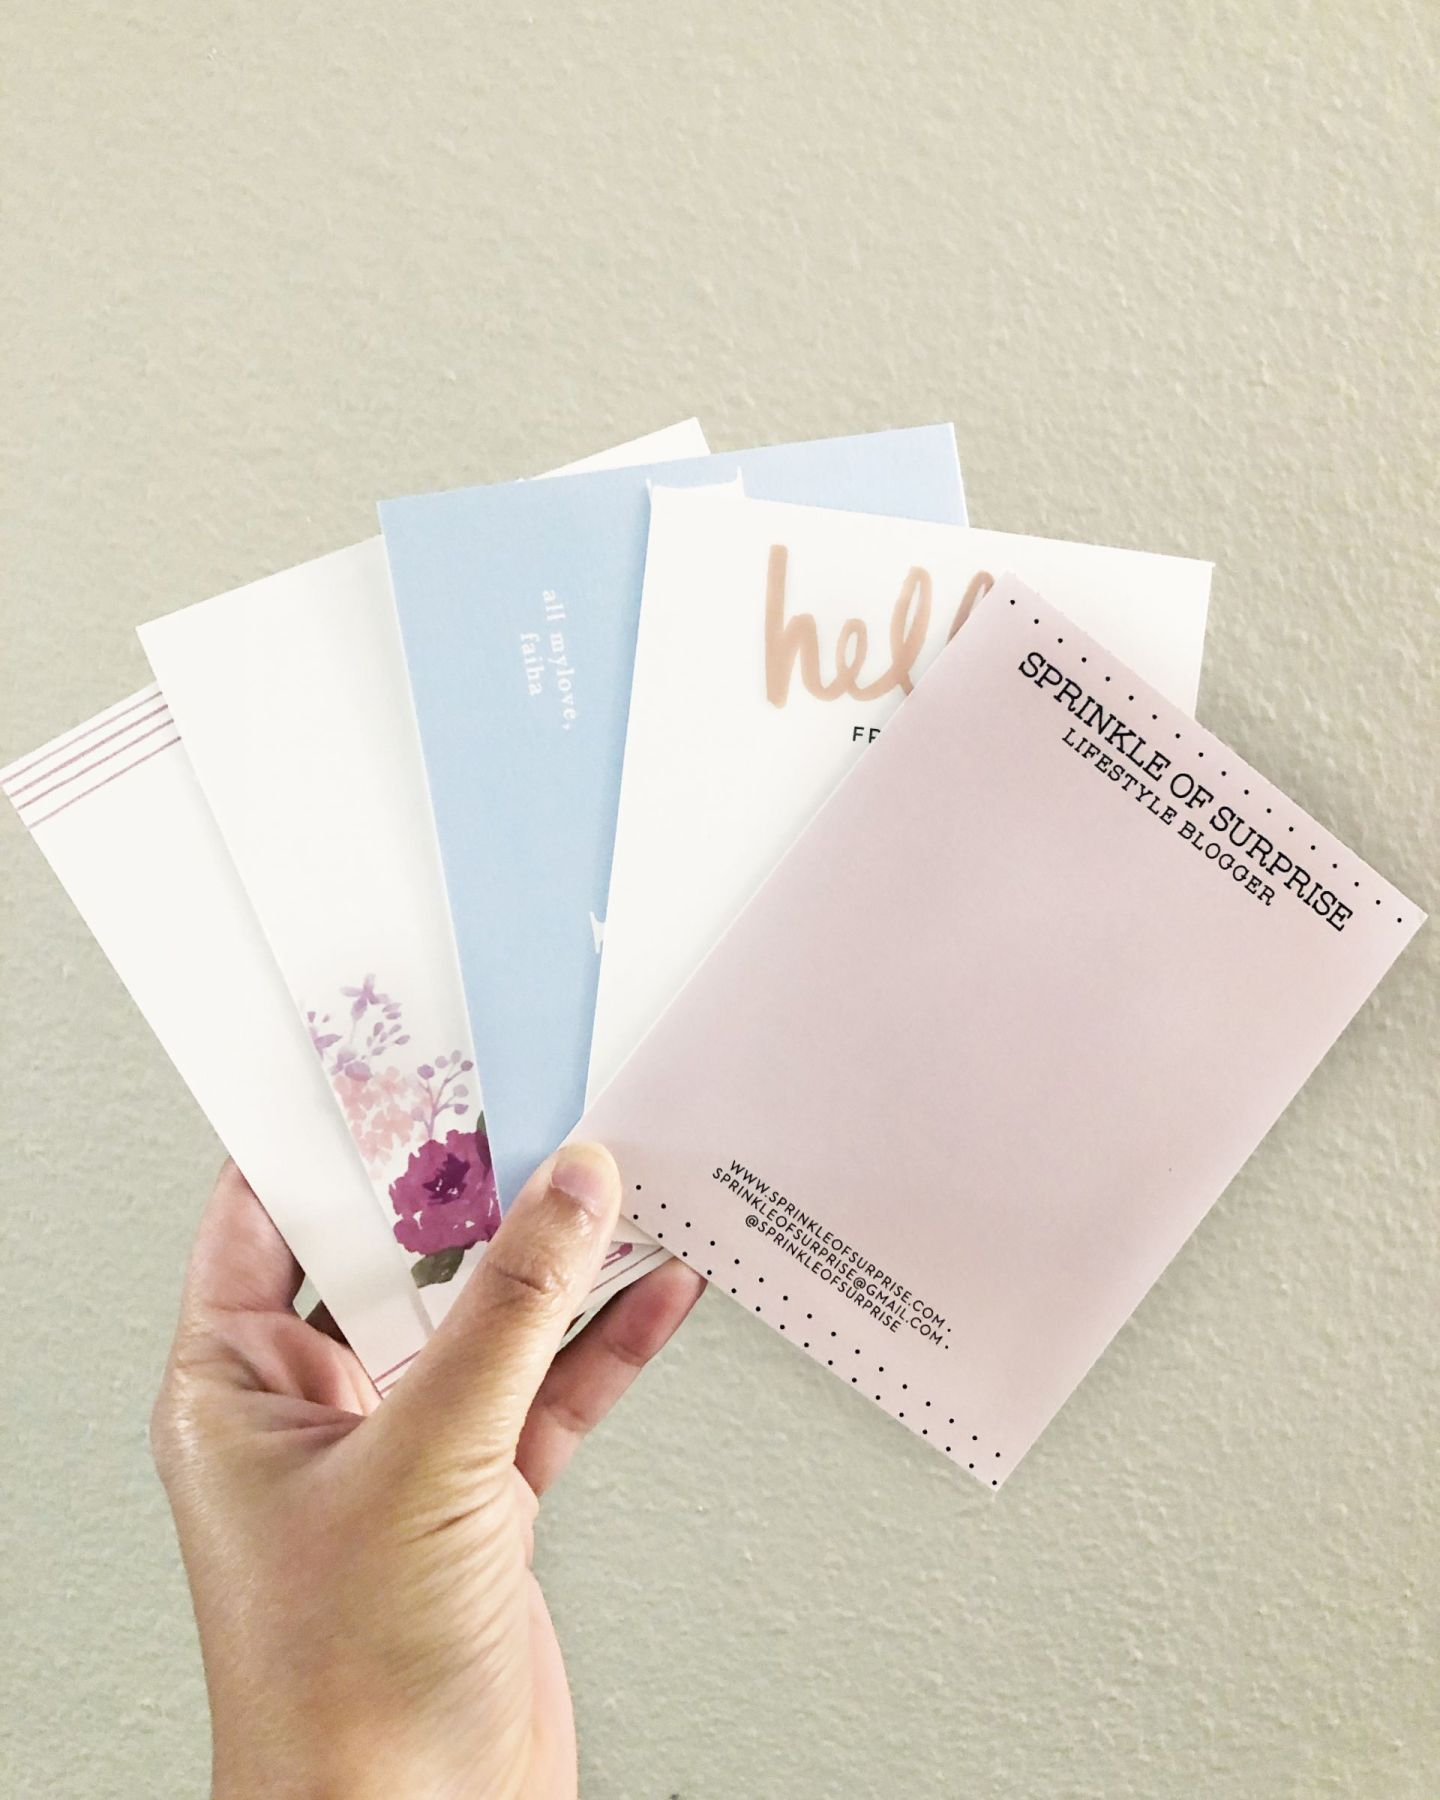 Basic Invite: Stationery & Invitations for all Your Needs!